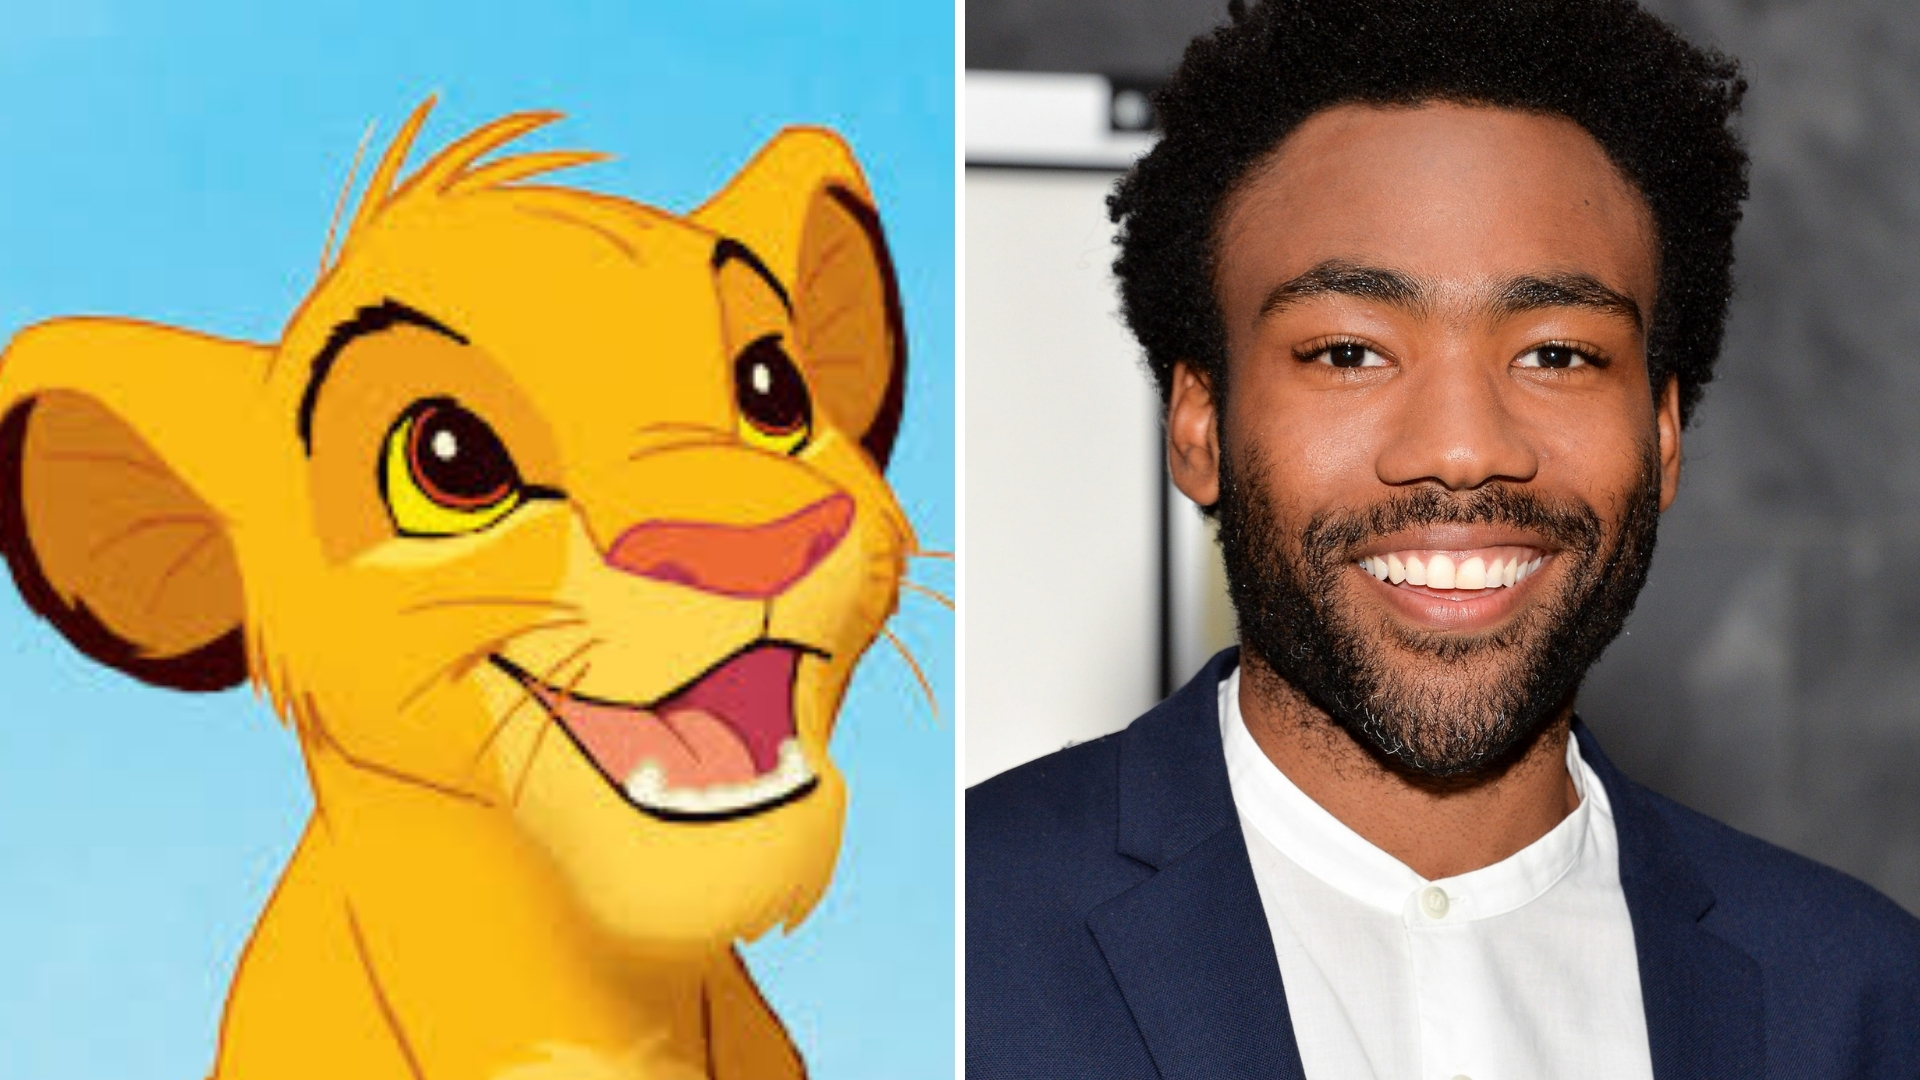 The First Trailer For The Remake Of 'The Lion King' Has Dropped